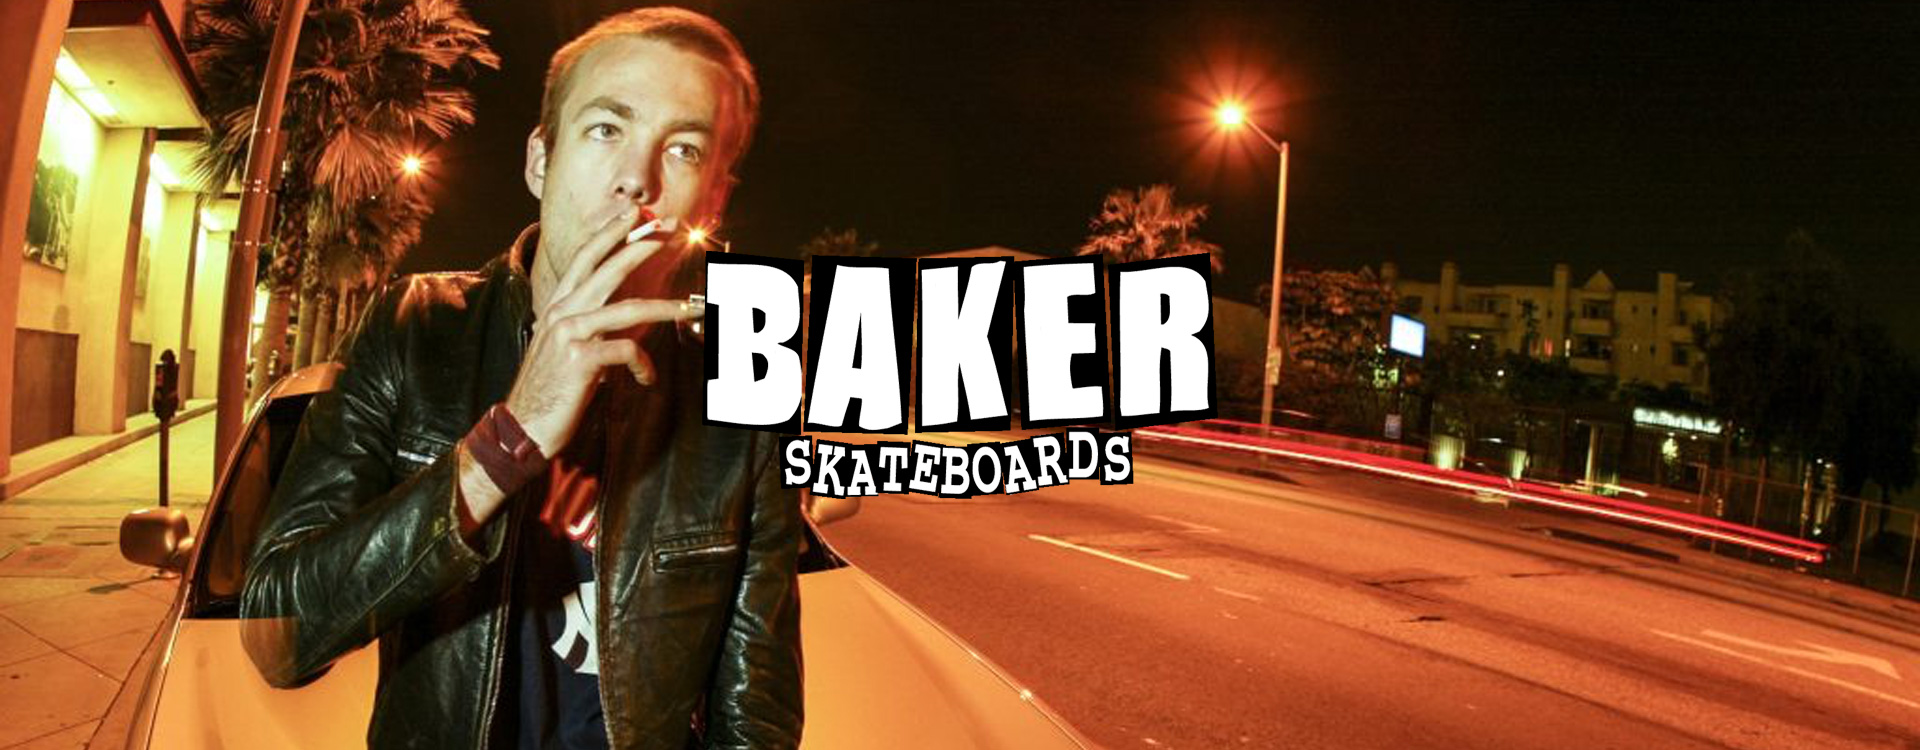 Andrew Reynolds, the boss of Baker Skateboards, smoking a cigarette in Los Angeles